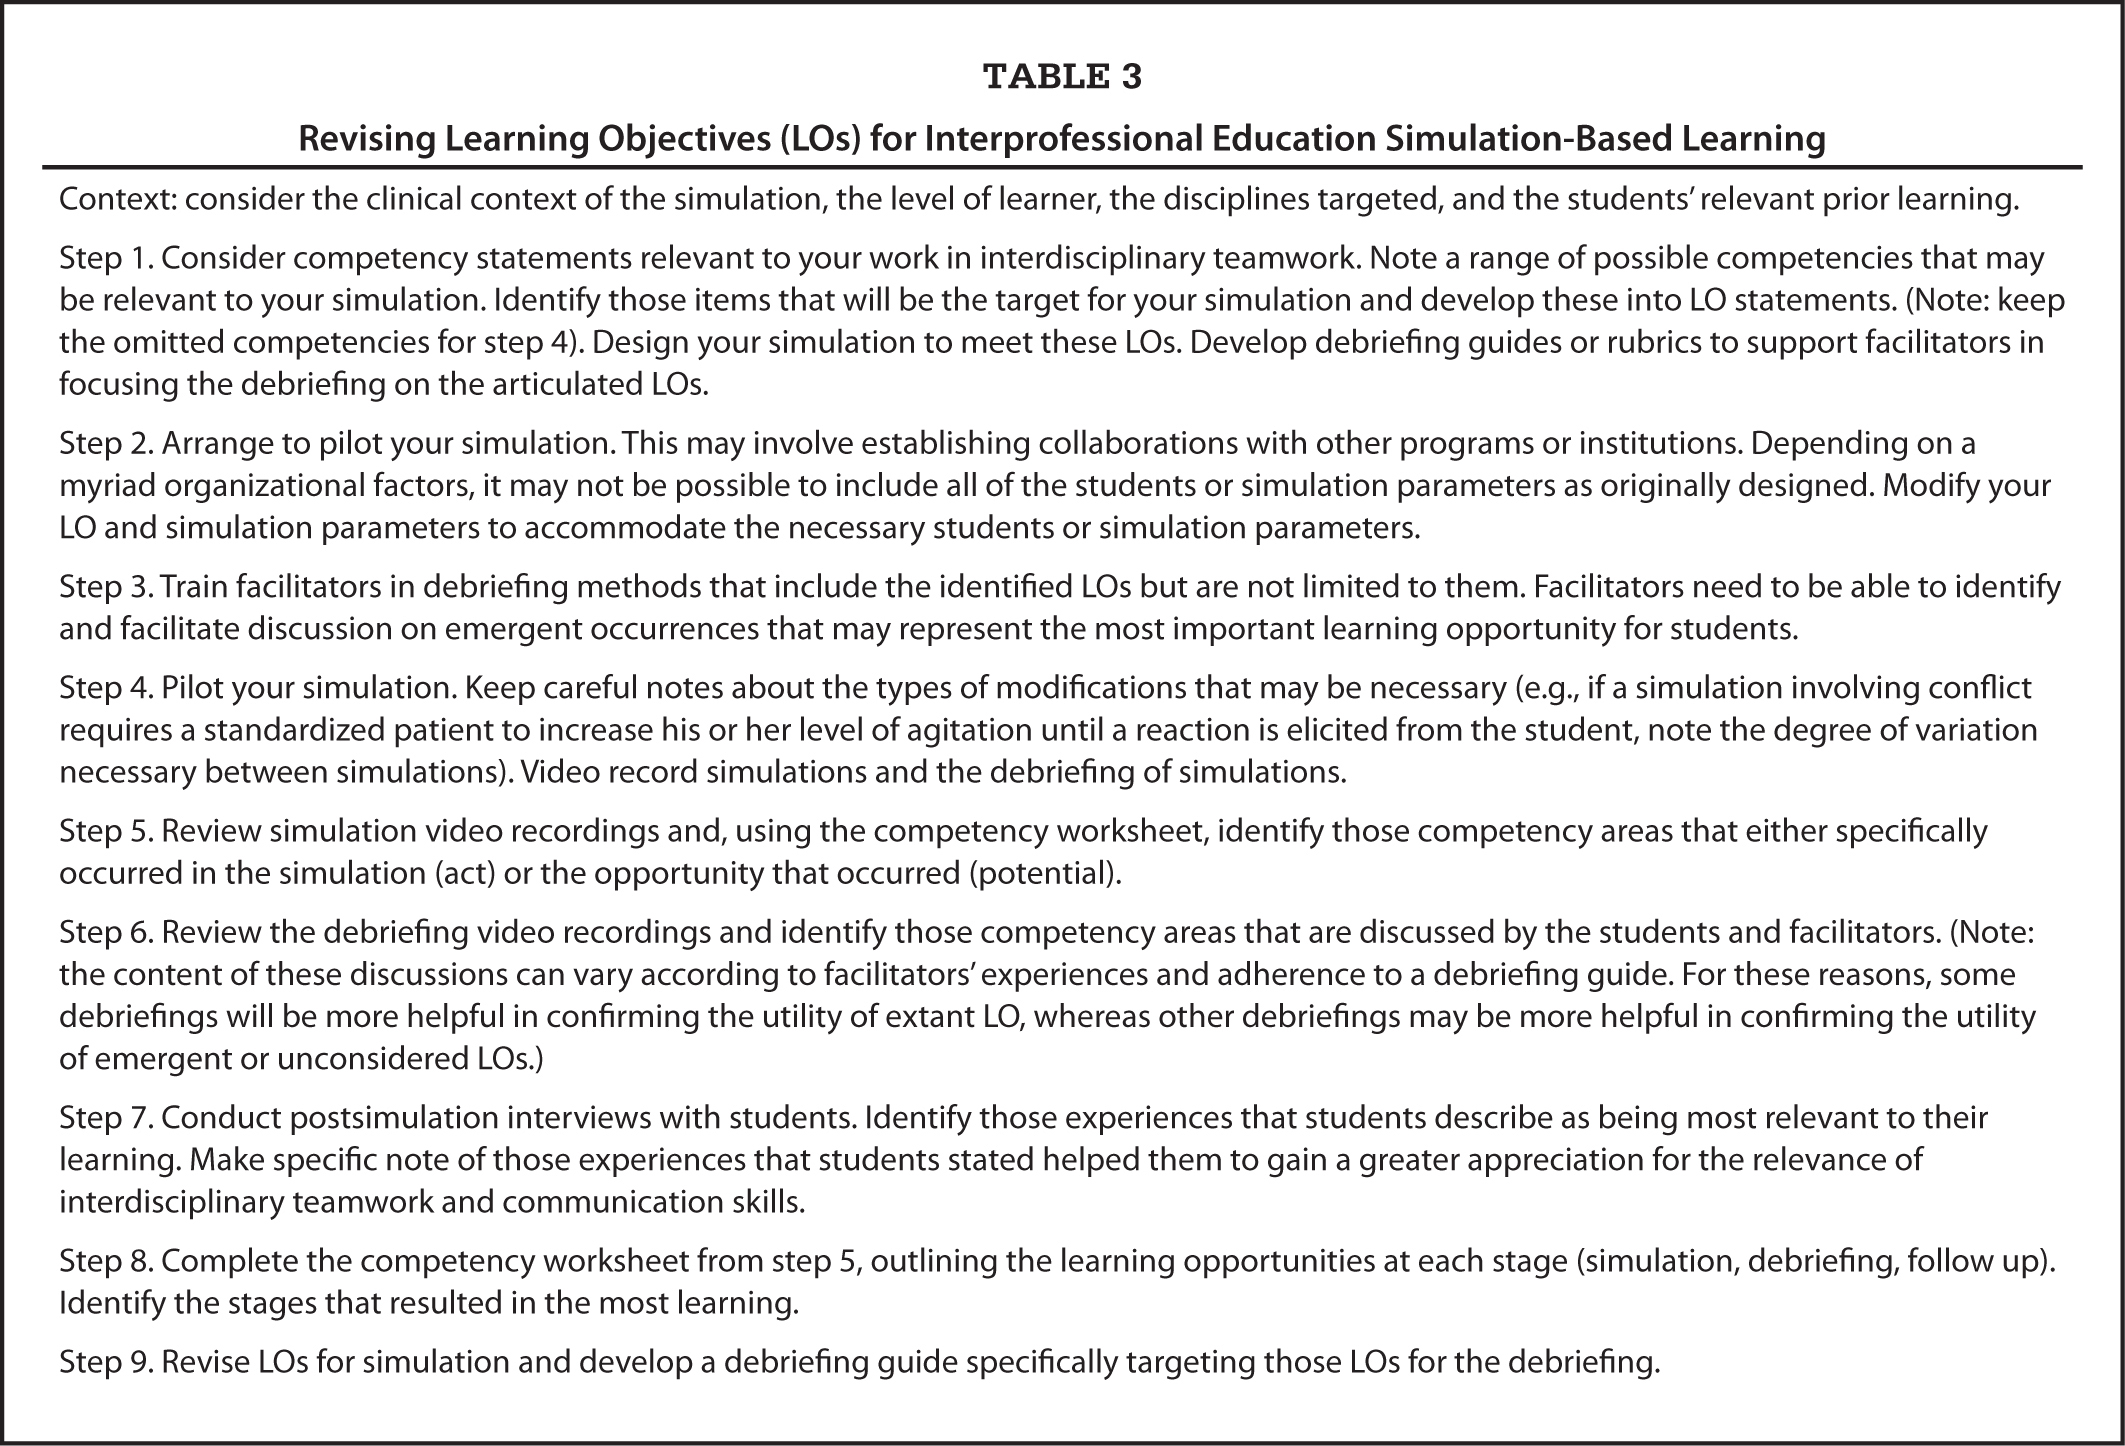 Revising Learning Objectives (LOs) for Interprofessional Education Simulation-Based Learning